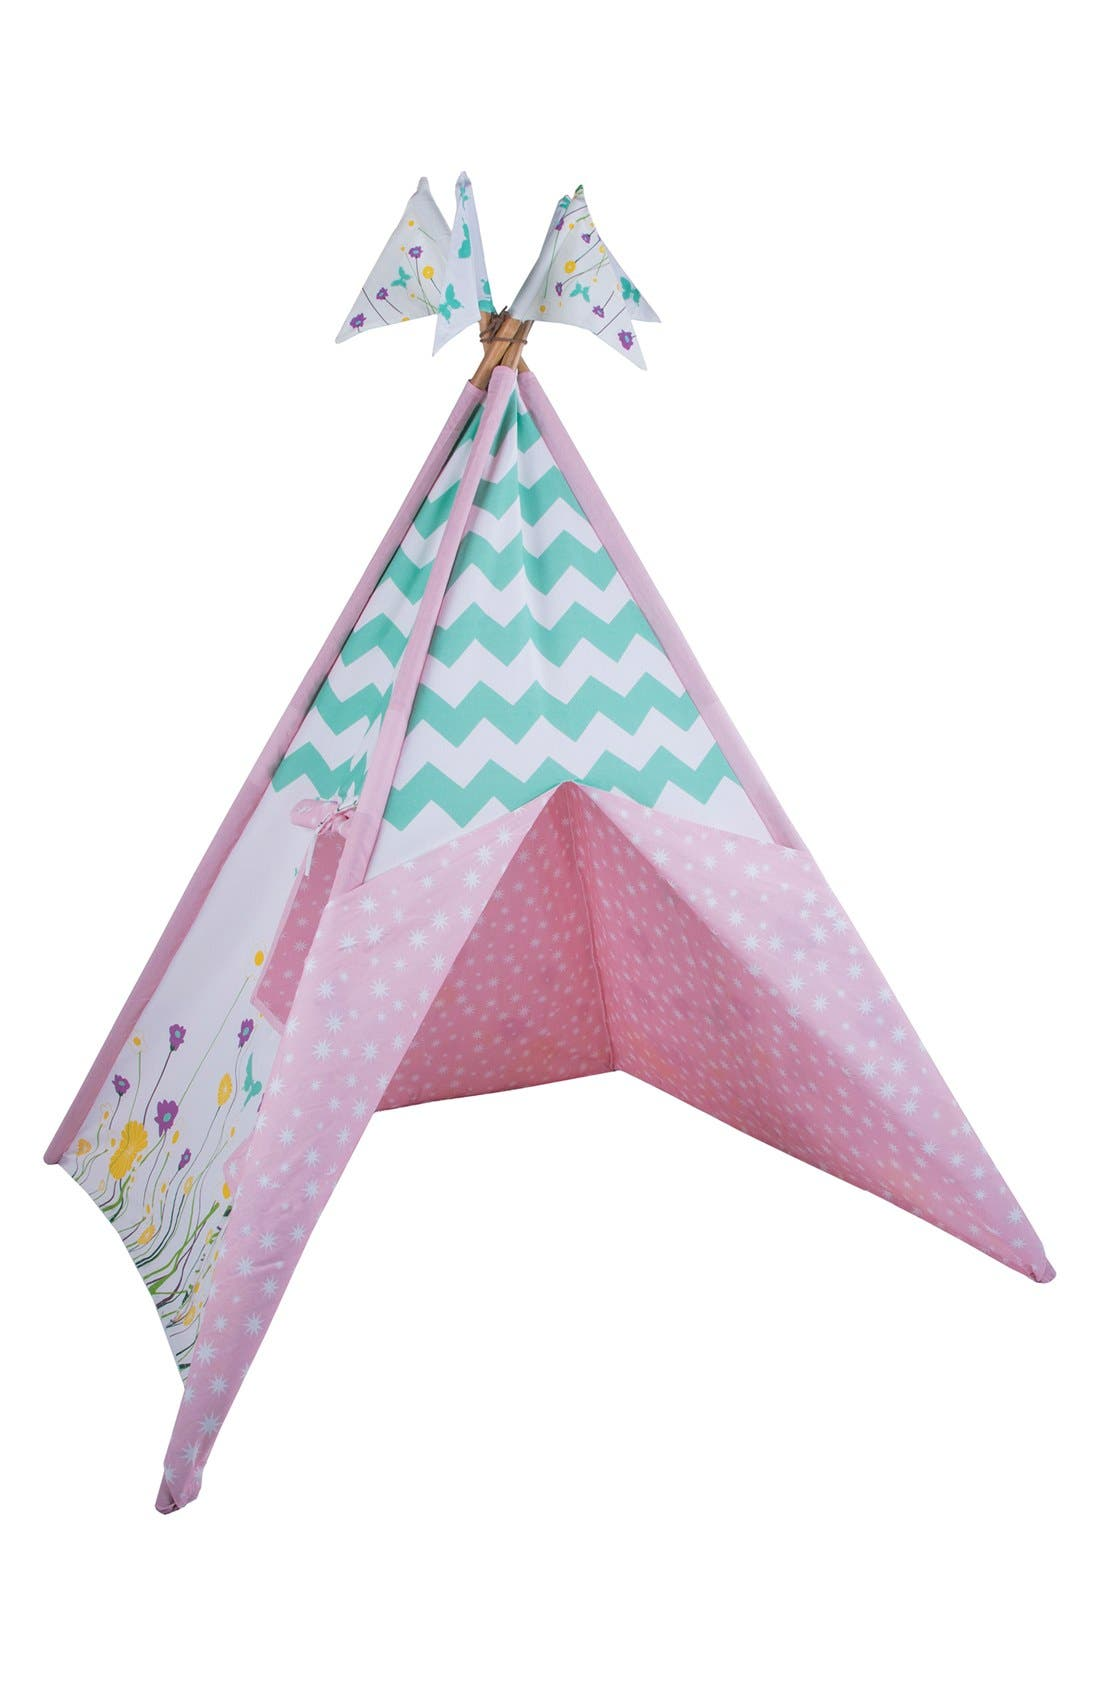 Pacific Play Tents 'Wildflowers' Cotton Canvas Teepee